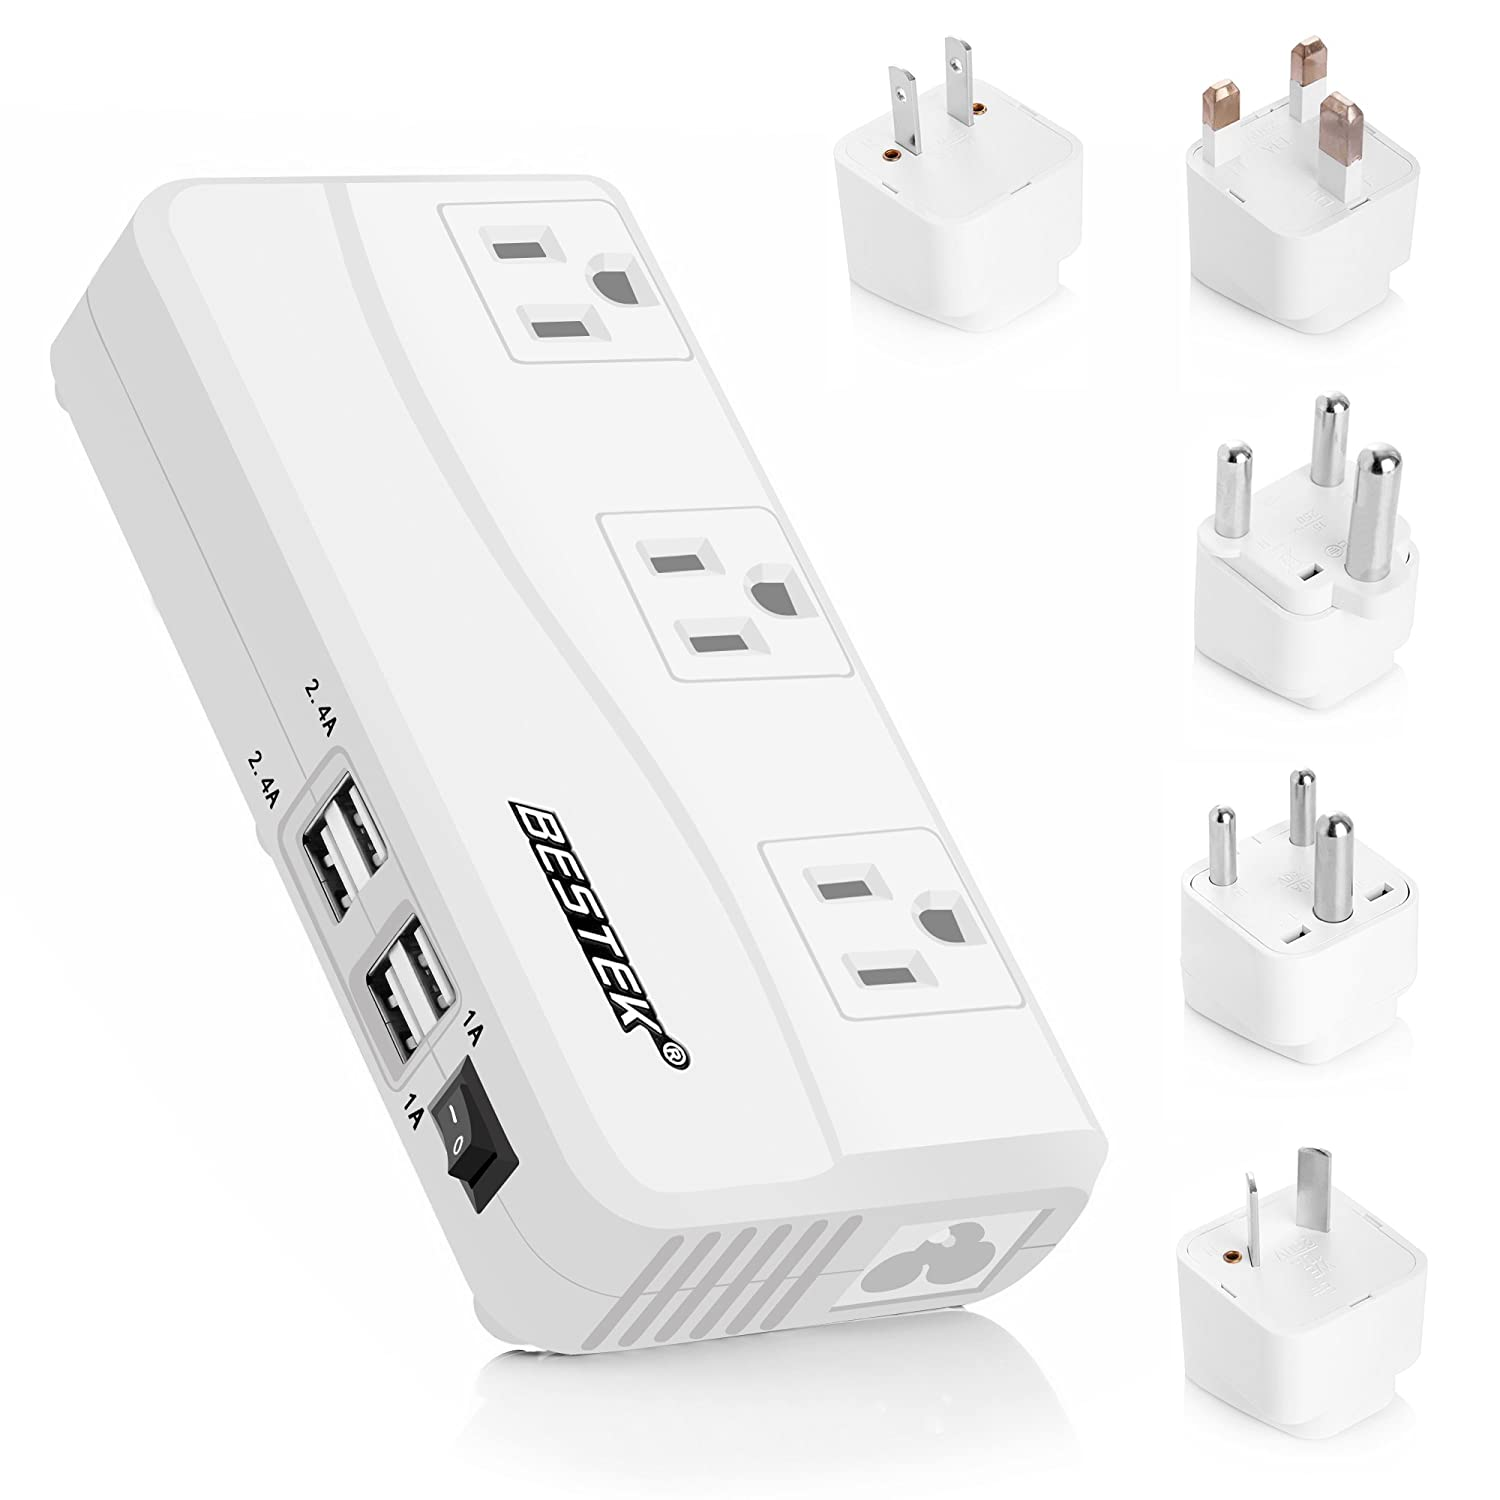 BESTEK International Power Adapter, 220V to 110V Step Down Travel Voltage Converter with 4-Port USB Including US/AU/EU/UK//India/South Africa Plug Adapter, 200W